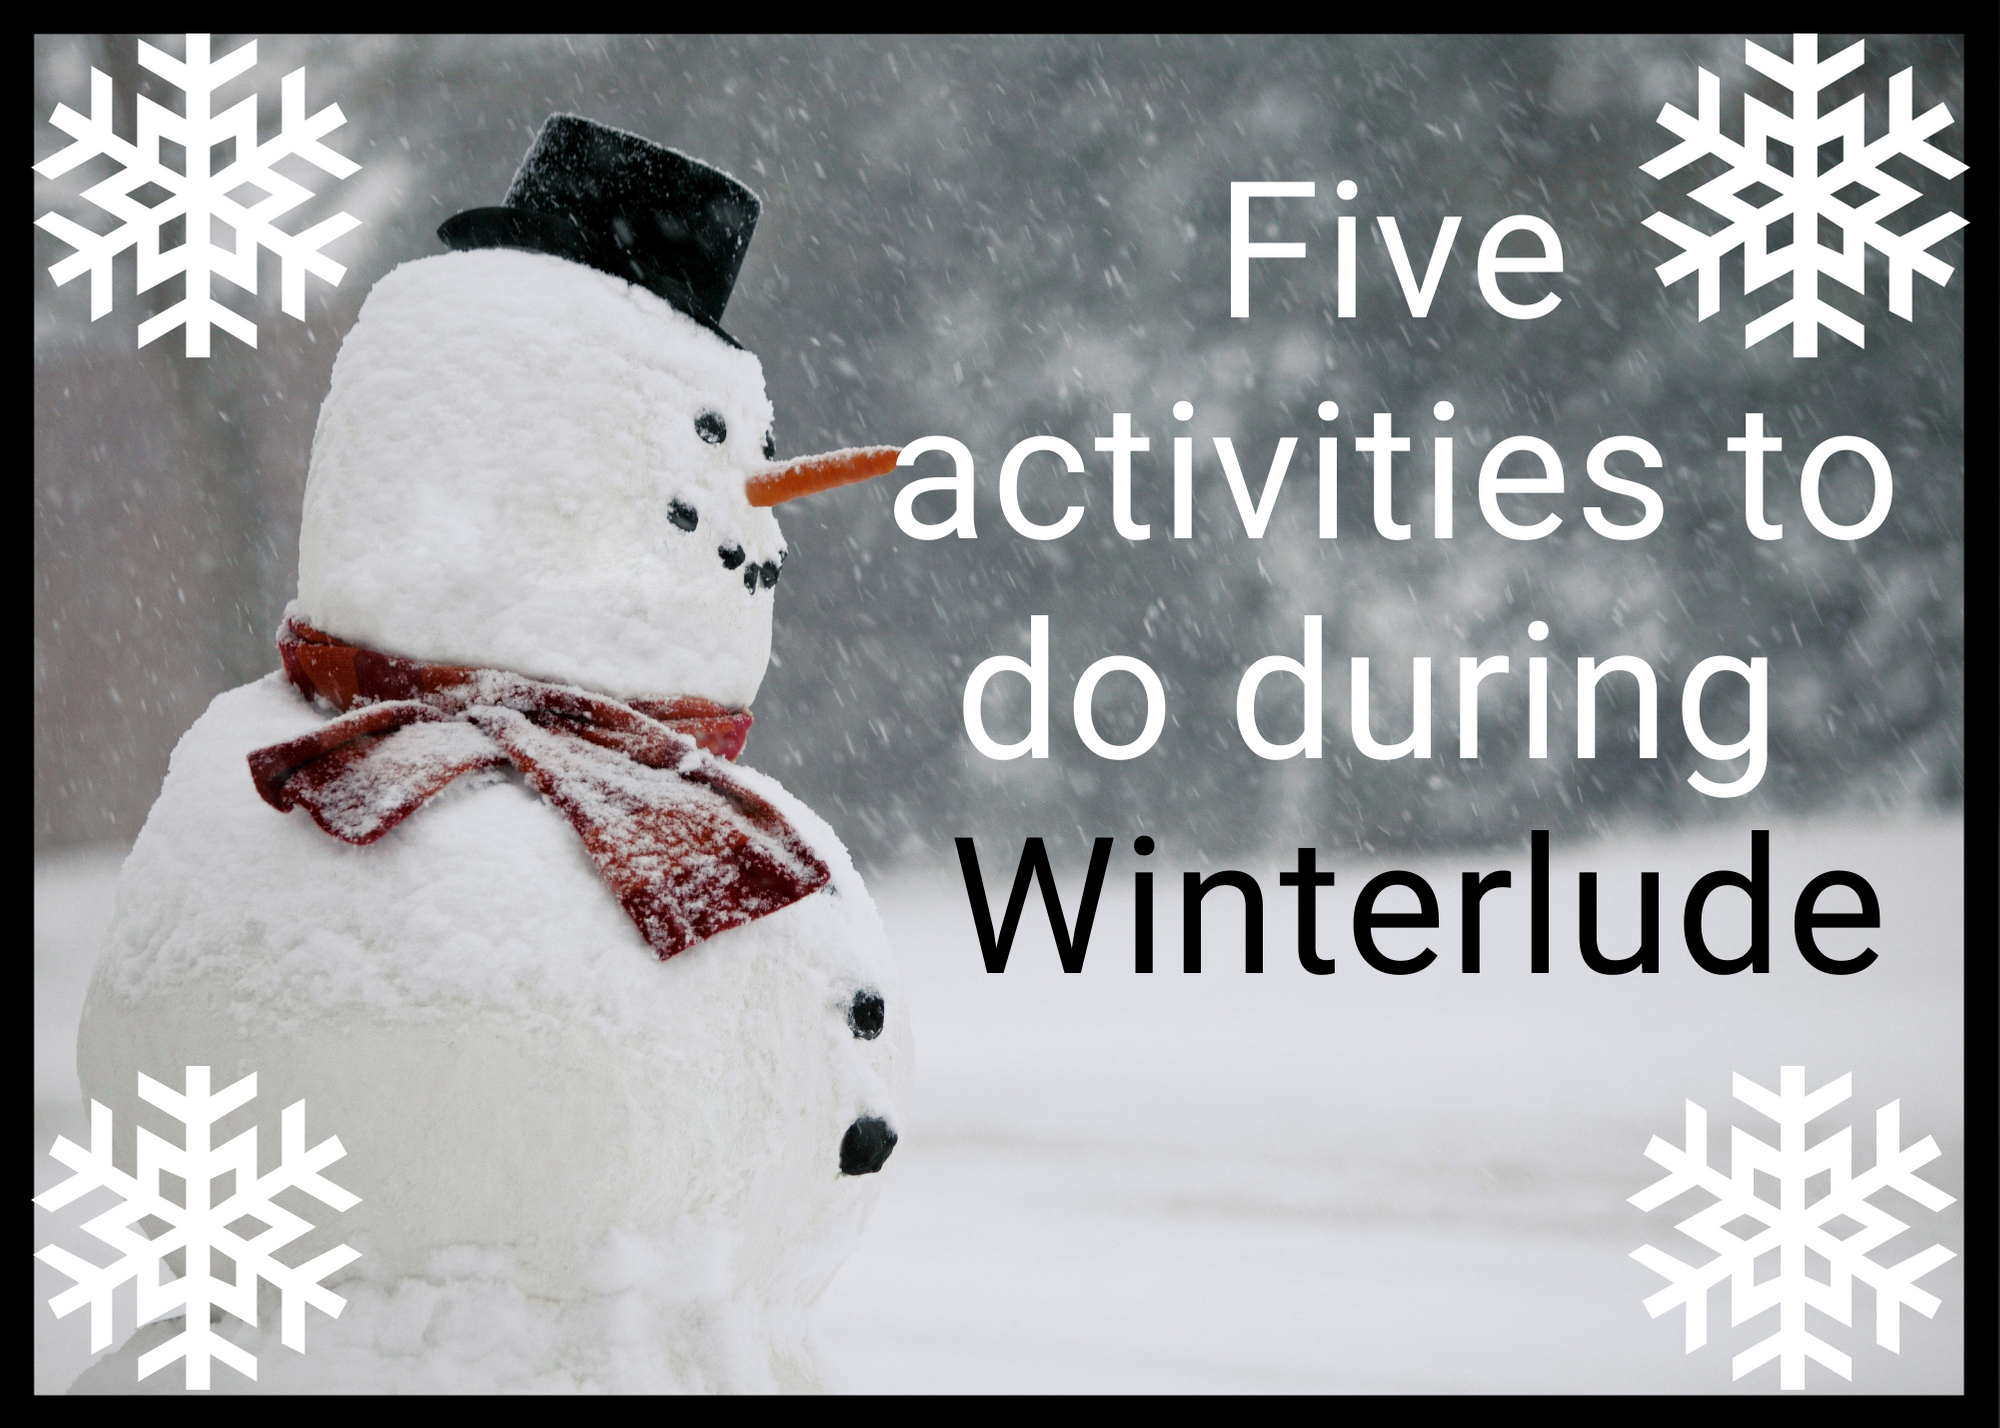 Auberge Tom B&B - Winterlude - Five Activities To Do During Winterlude